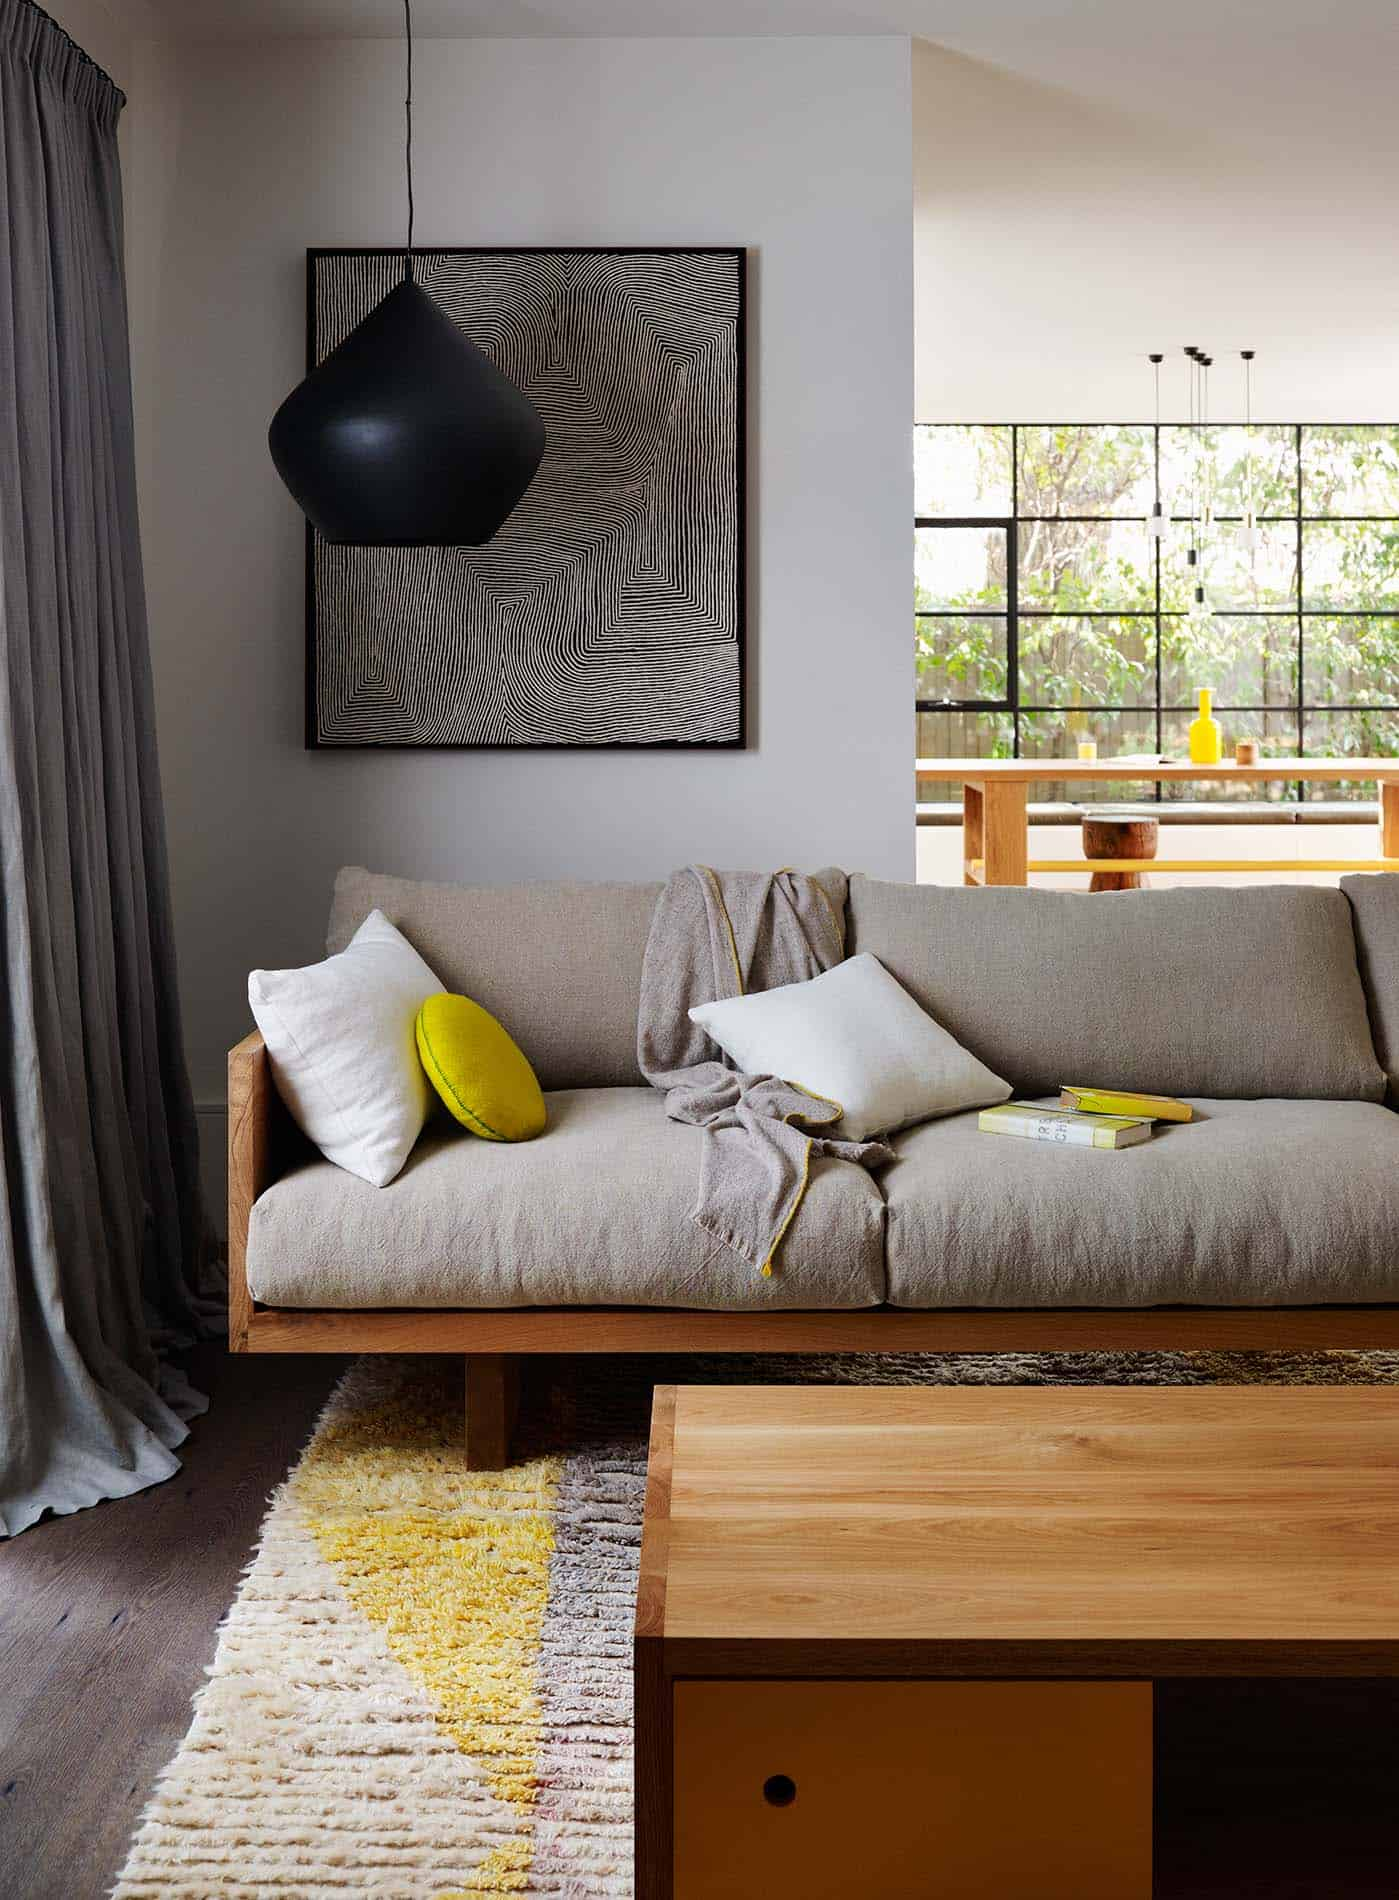 Rustic Modern Sofa Designs | Source: Mark Tuckey Plinth Sofa - Photo by Lucas Allen